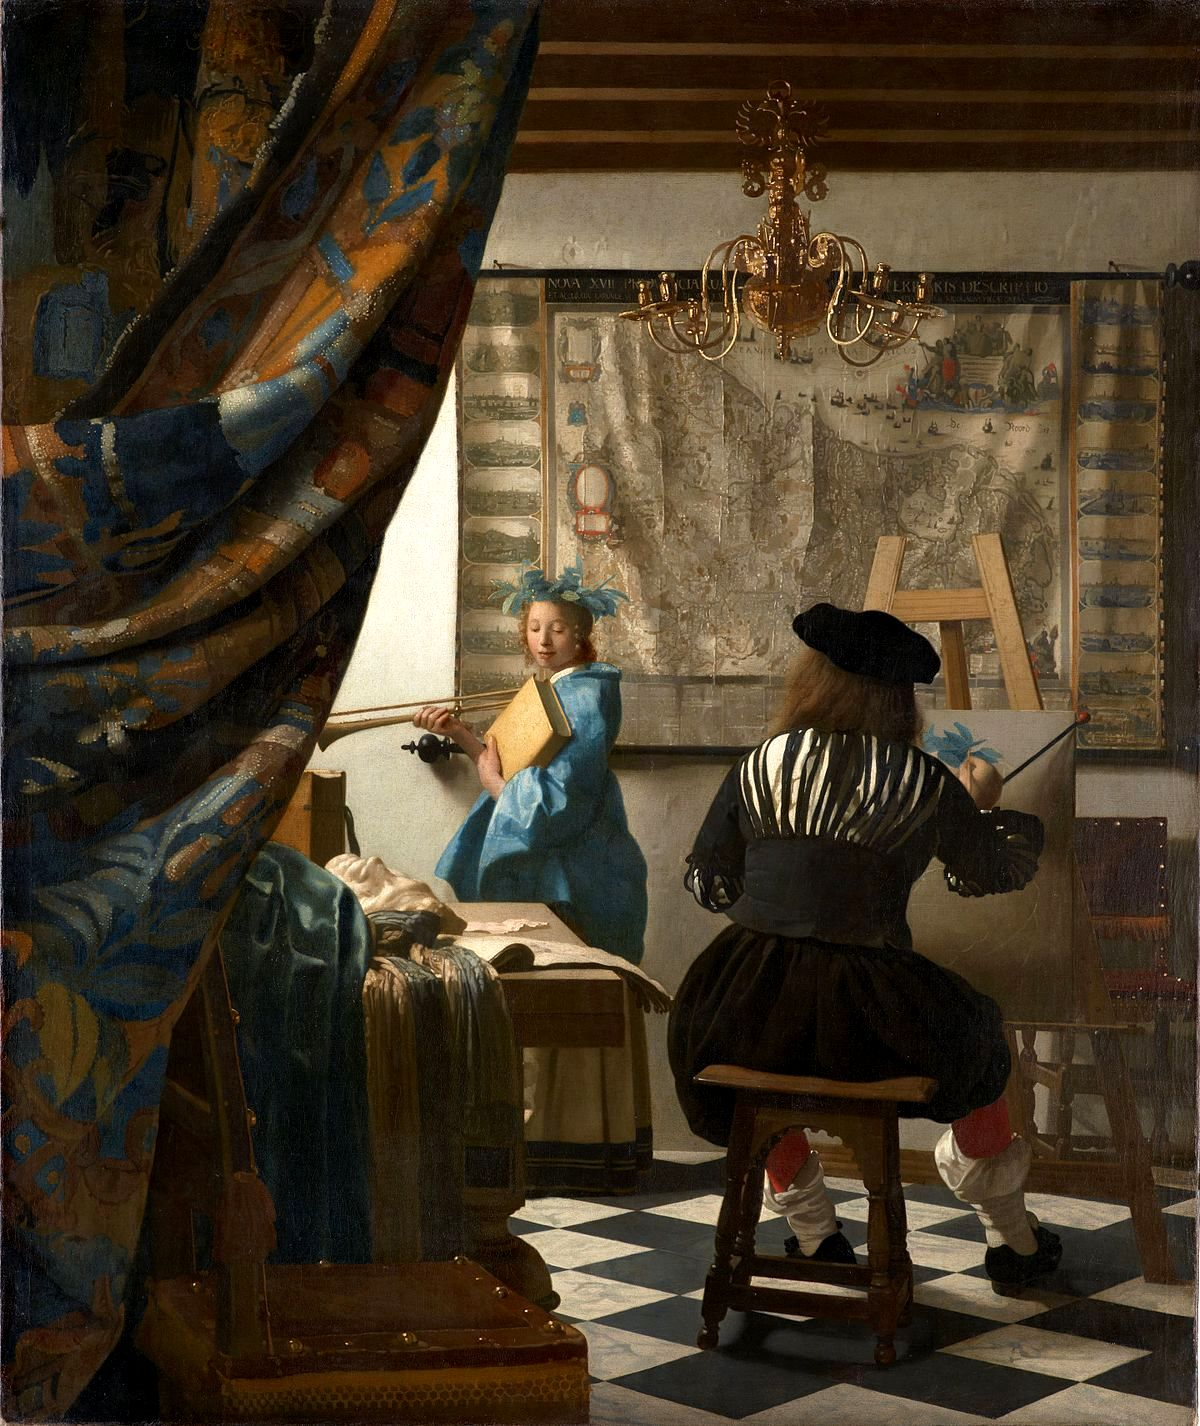 Jan_Vermeer_-_The_Art_of_Painting_-_Google_Art_Project.jpg